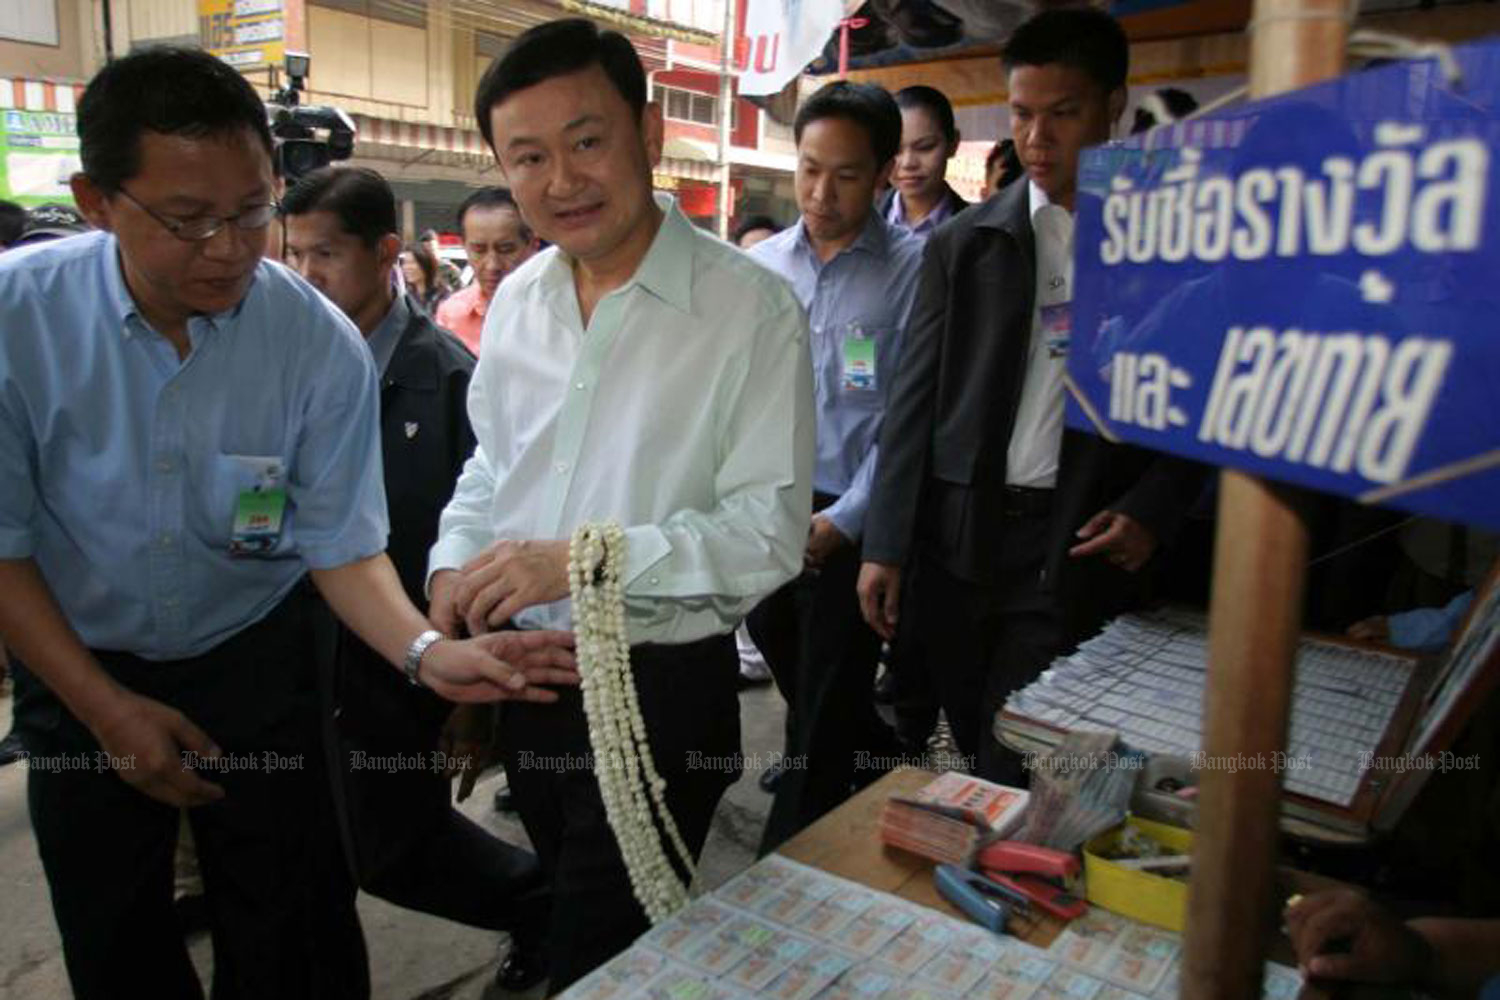 Then-prime minister Thaksin Shinawatra walks past a government lottery stall in Tak province in 2004. (File photo by Chanat Katanyu)